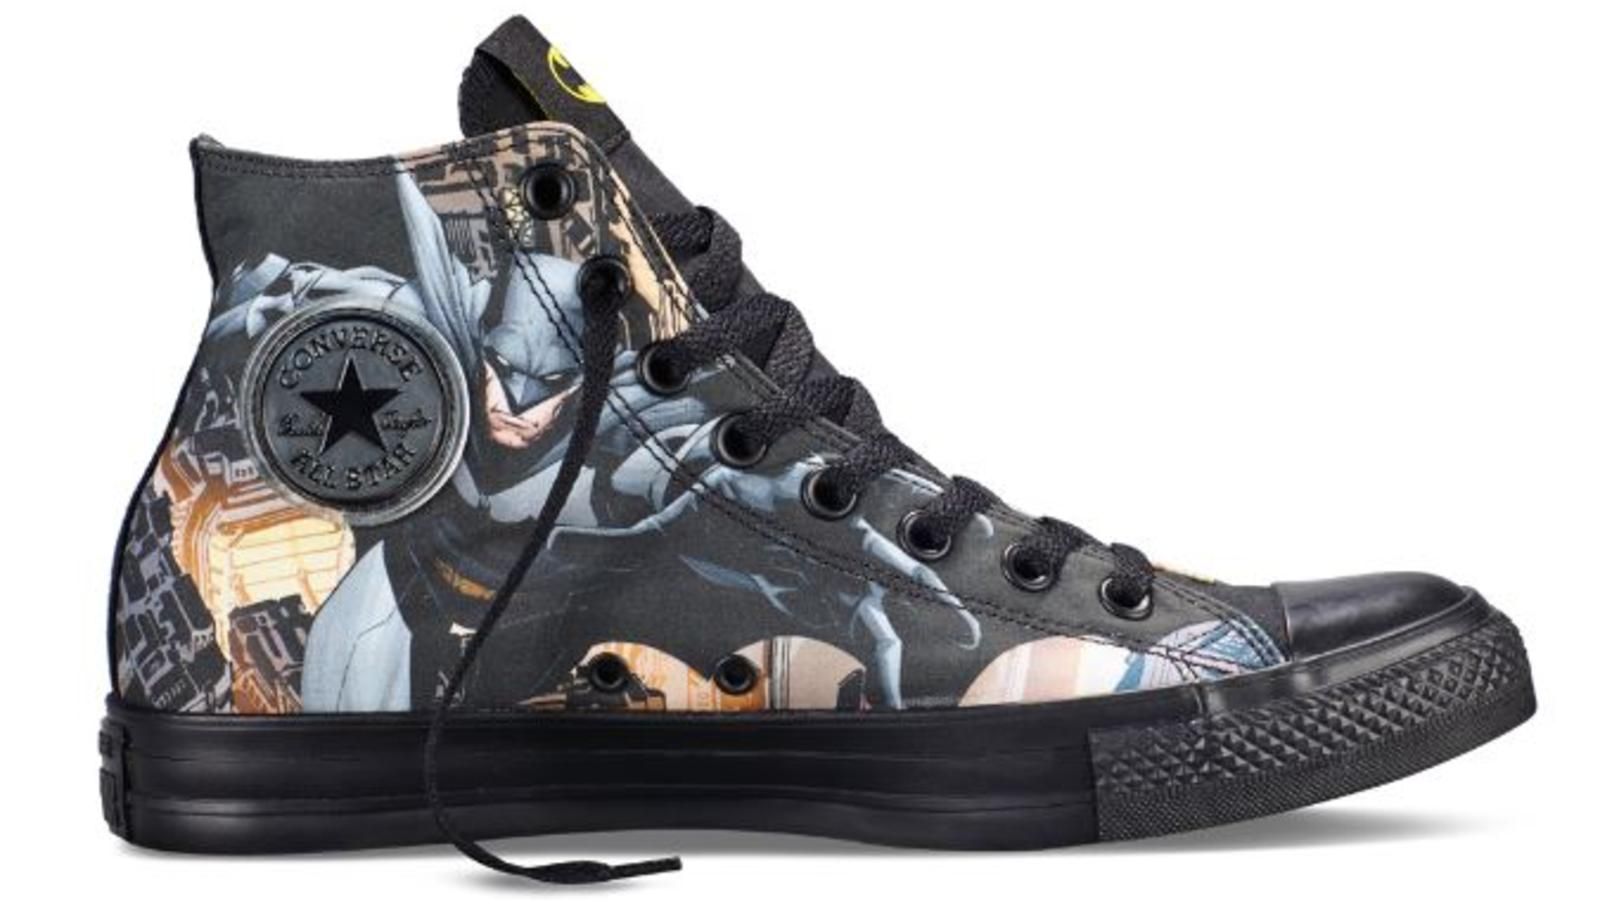 adfda5c4be15 CONVERSE CHUCK TAYLOR ALL STAR DC COMICS BATMAN - Nike News